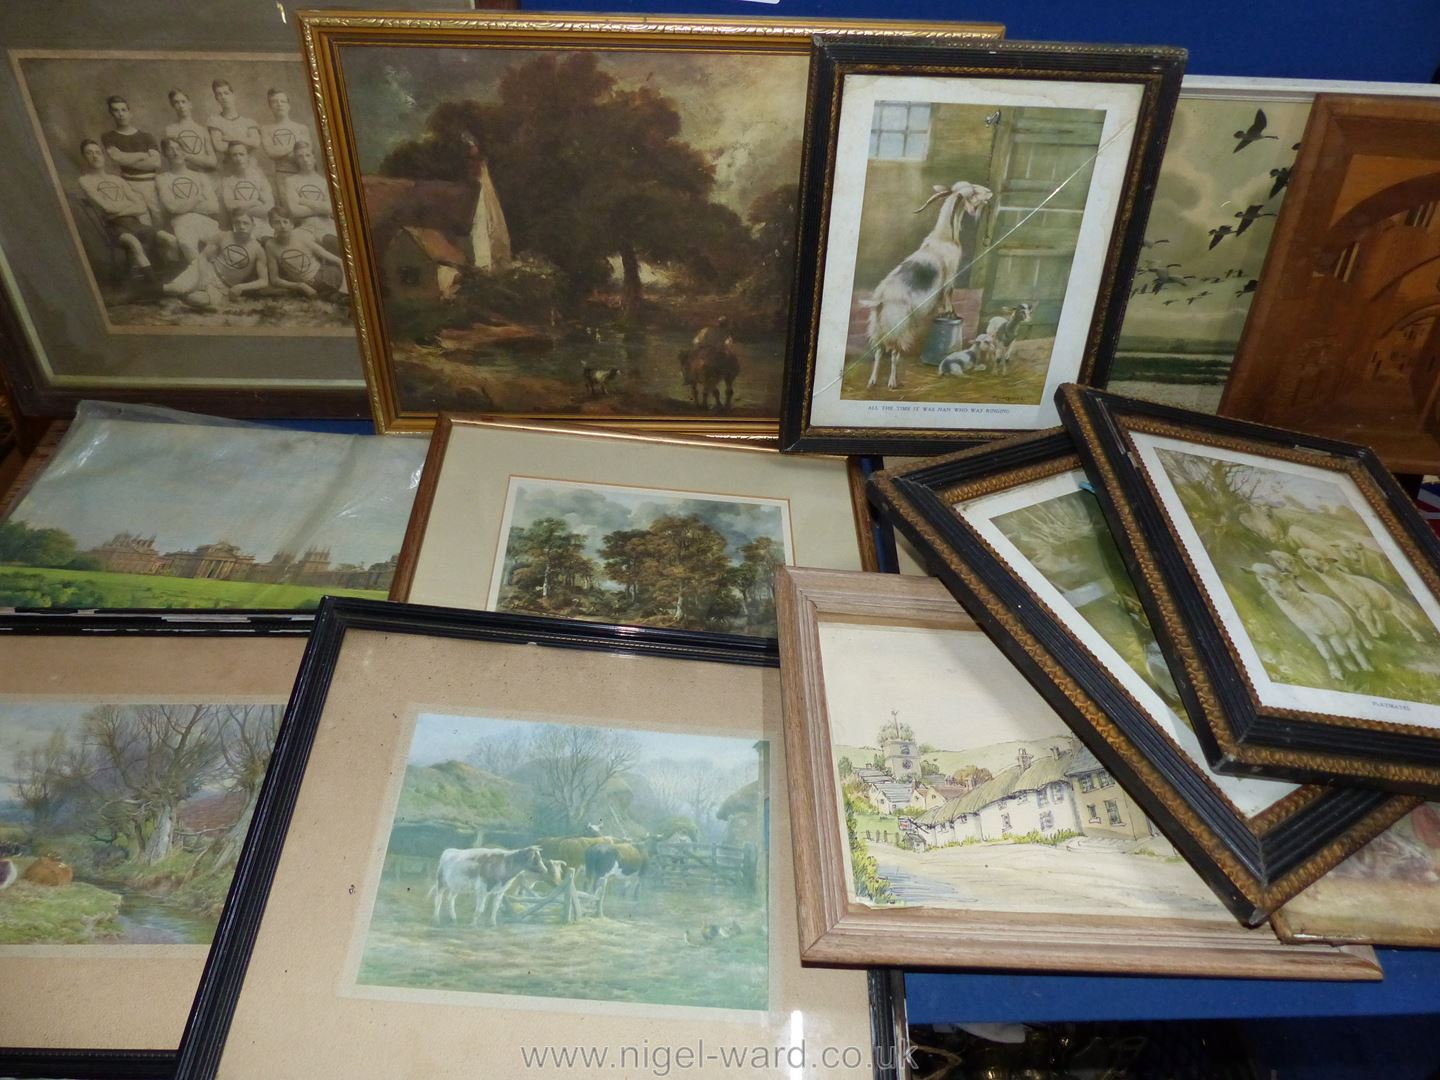 Assorted framed period pictures and other pictures.